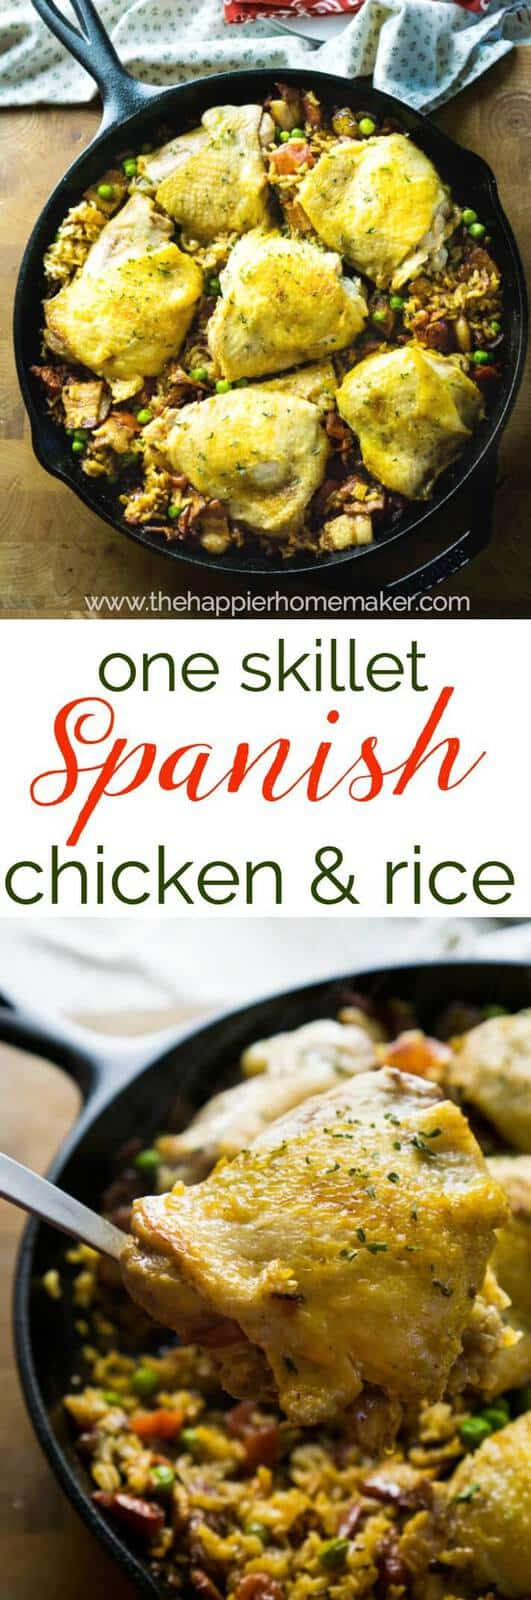 One skillet Spanish style chicken and rice is an easy to make, flavorful meal!